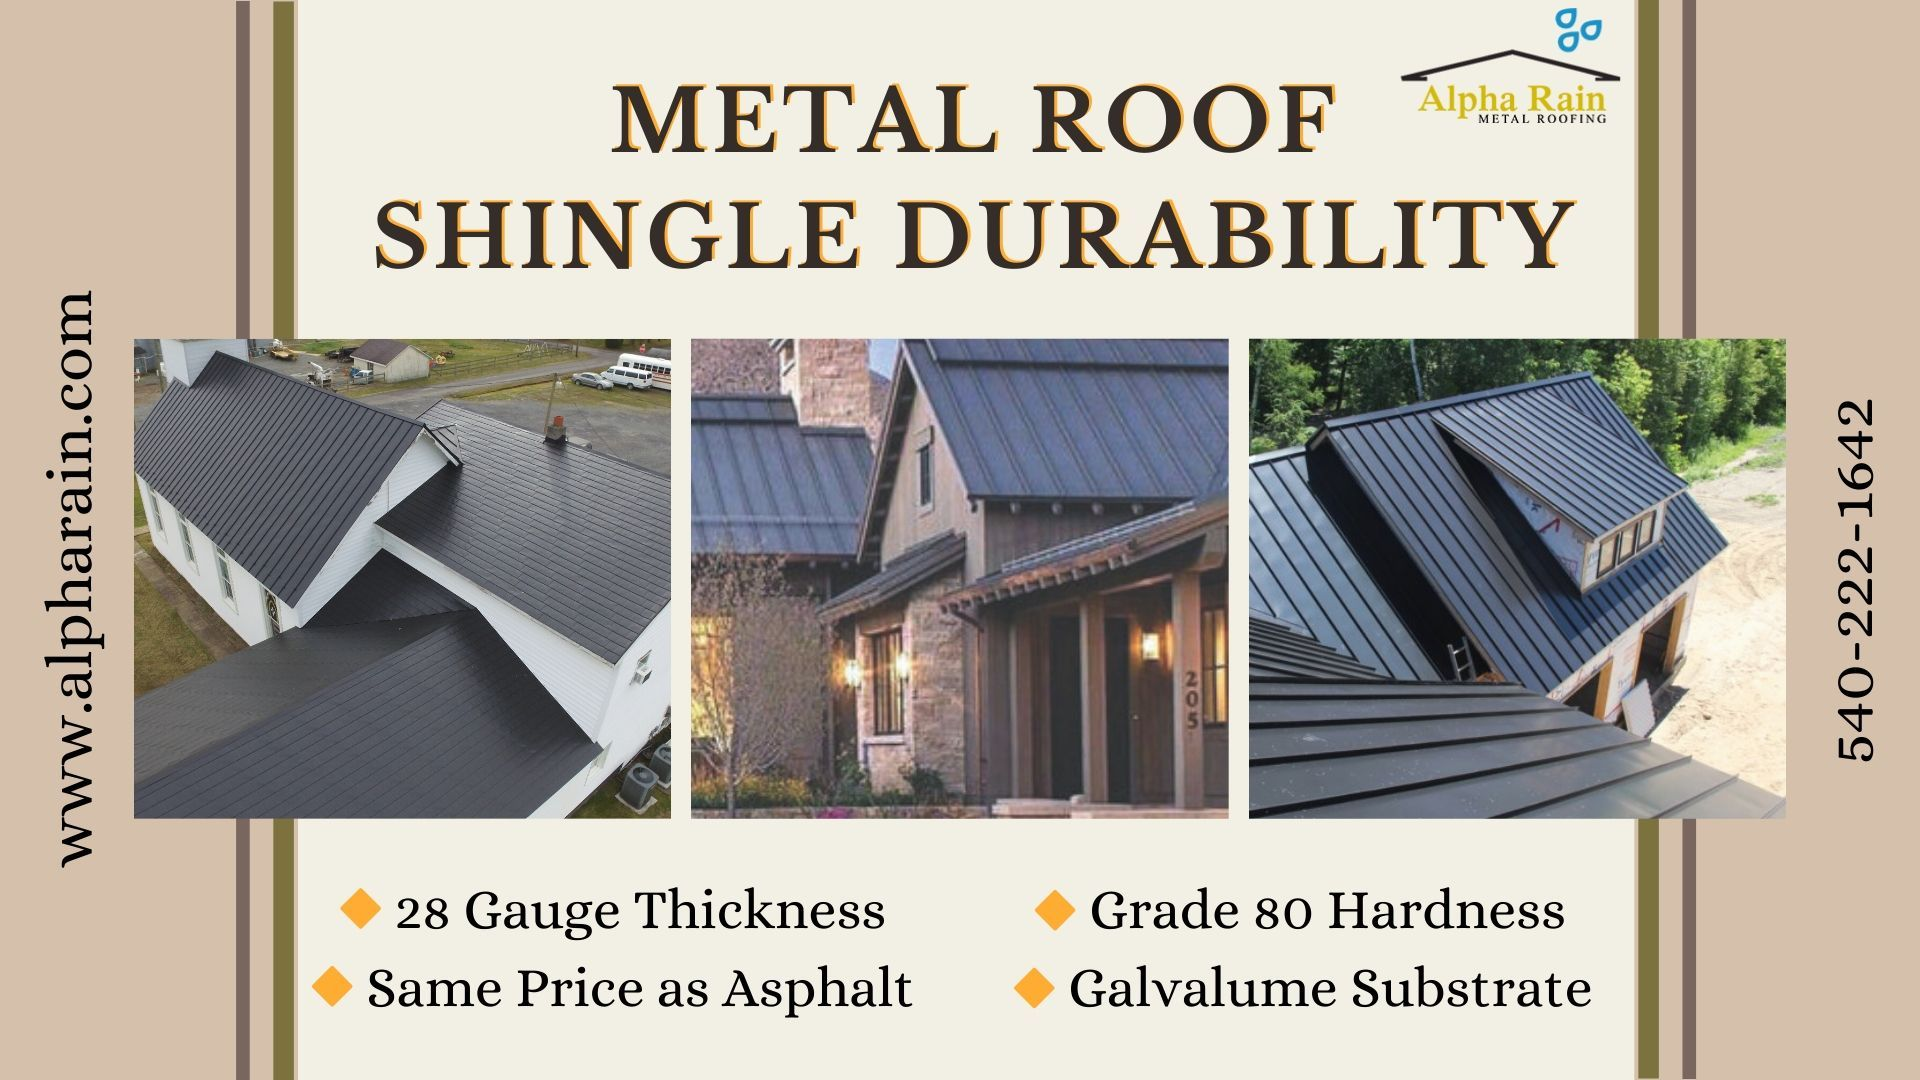 All We Want In Roofing Is Dent Protection So Alpha Rain Has Created Amazing Metal Shingles That Are Designed With Proper 28 Gauge Thickne